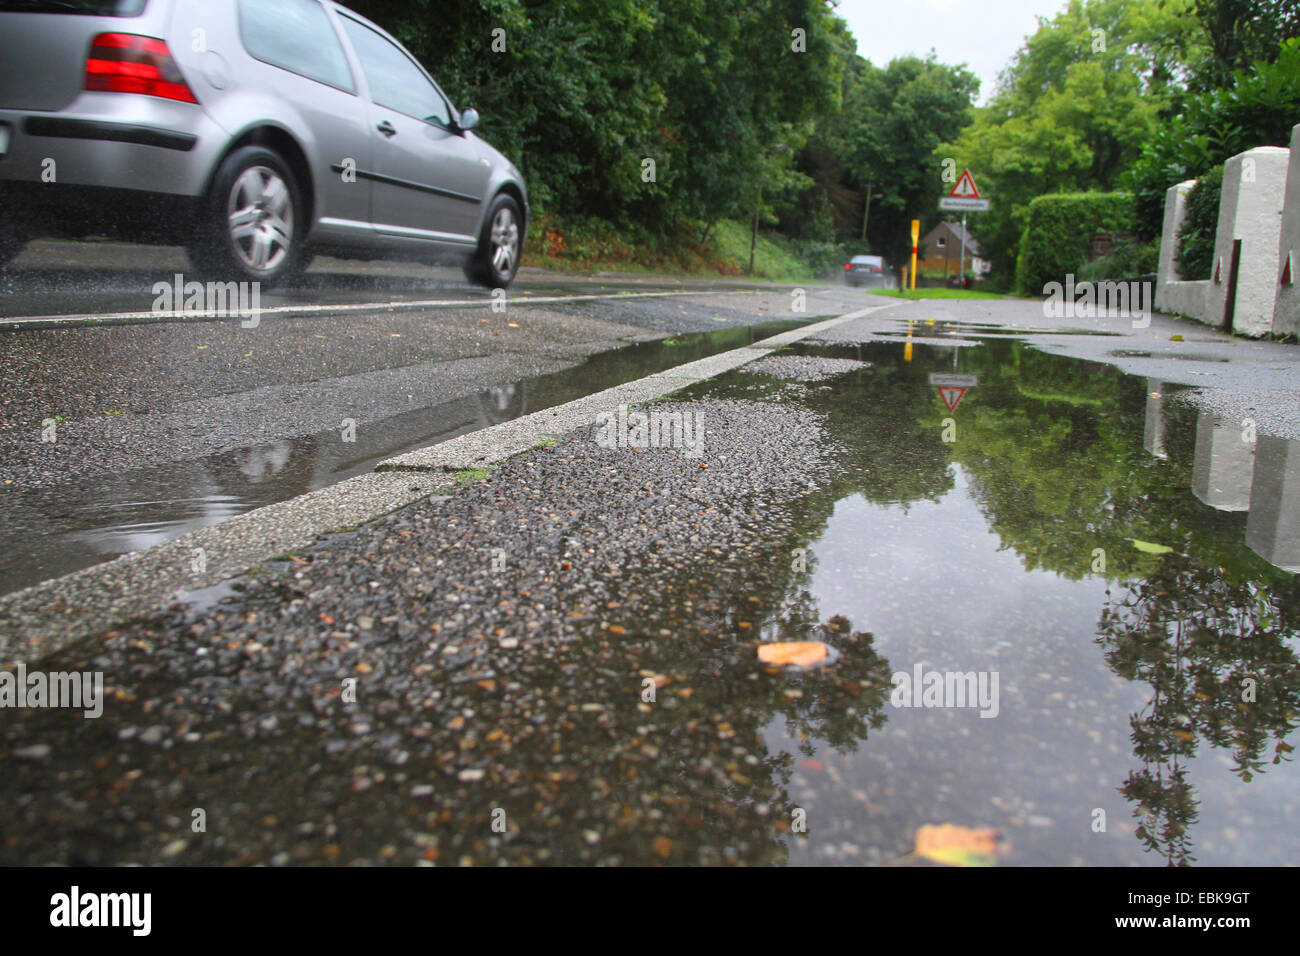 passenger car driving on a rain-wet road, Germany - Stock Image